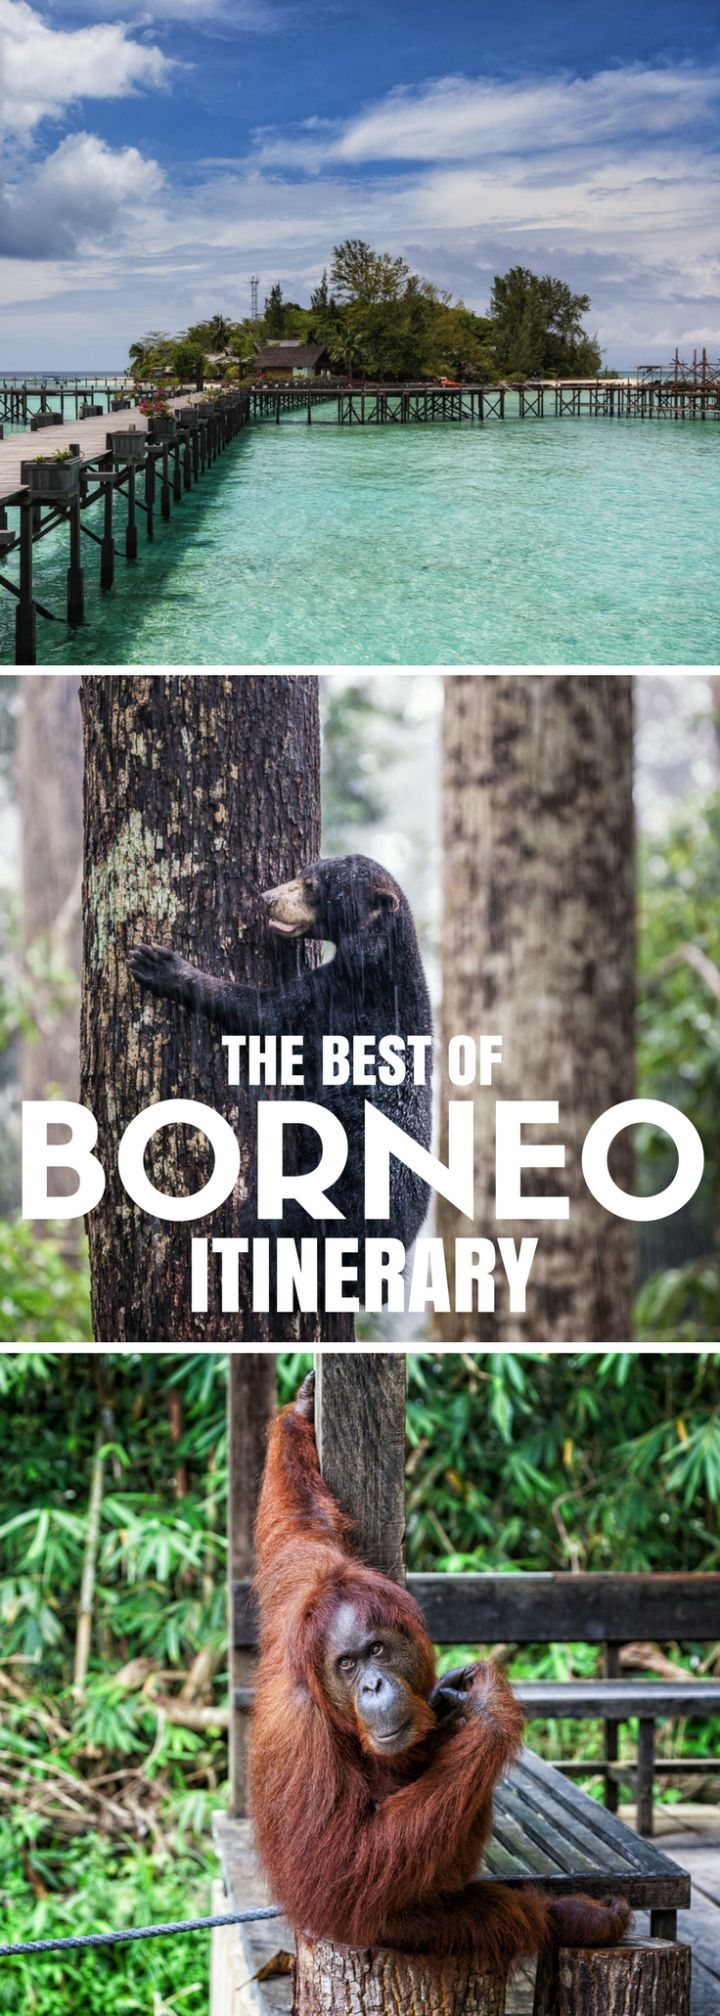 The best of Borneo squeezed into a 2-week itinerary: orangutans, proboscis monkeys, pygmy elephants, and turtles; Danum Valley, Kinabatangan, Lankayan Island and more!